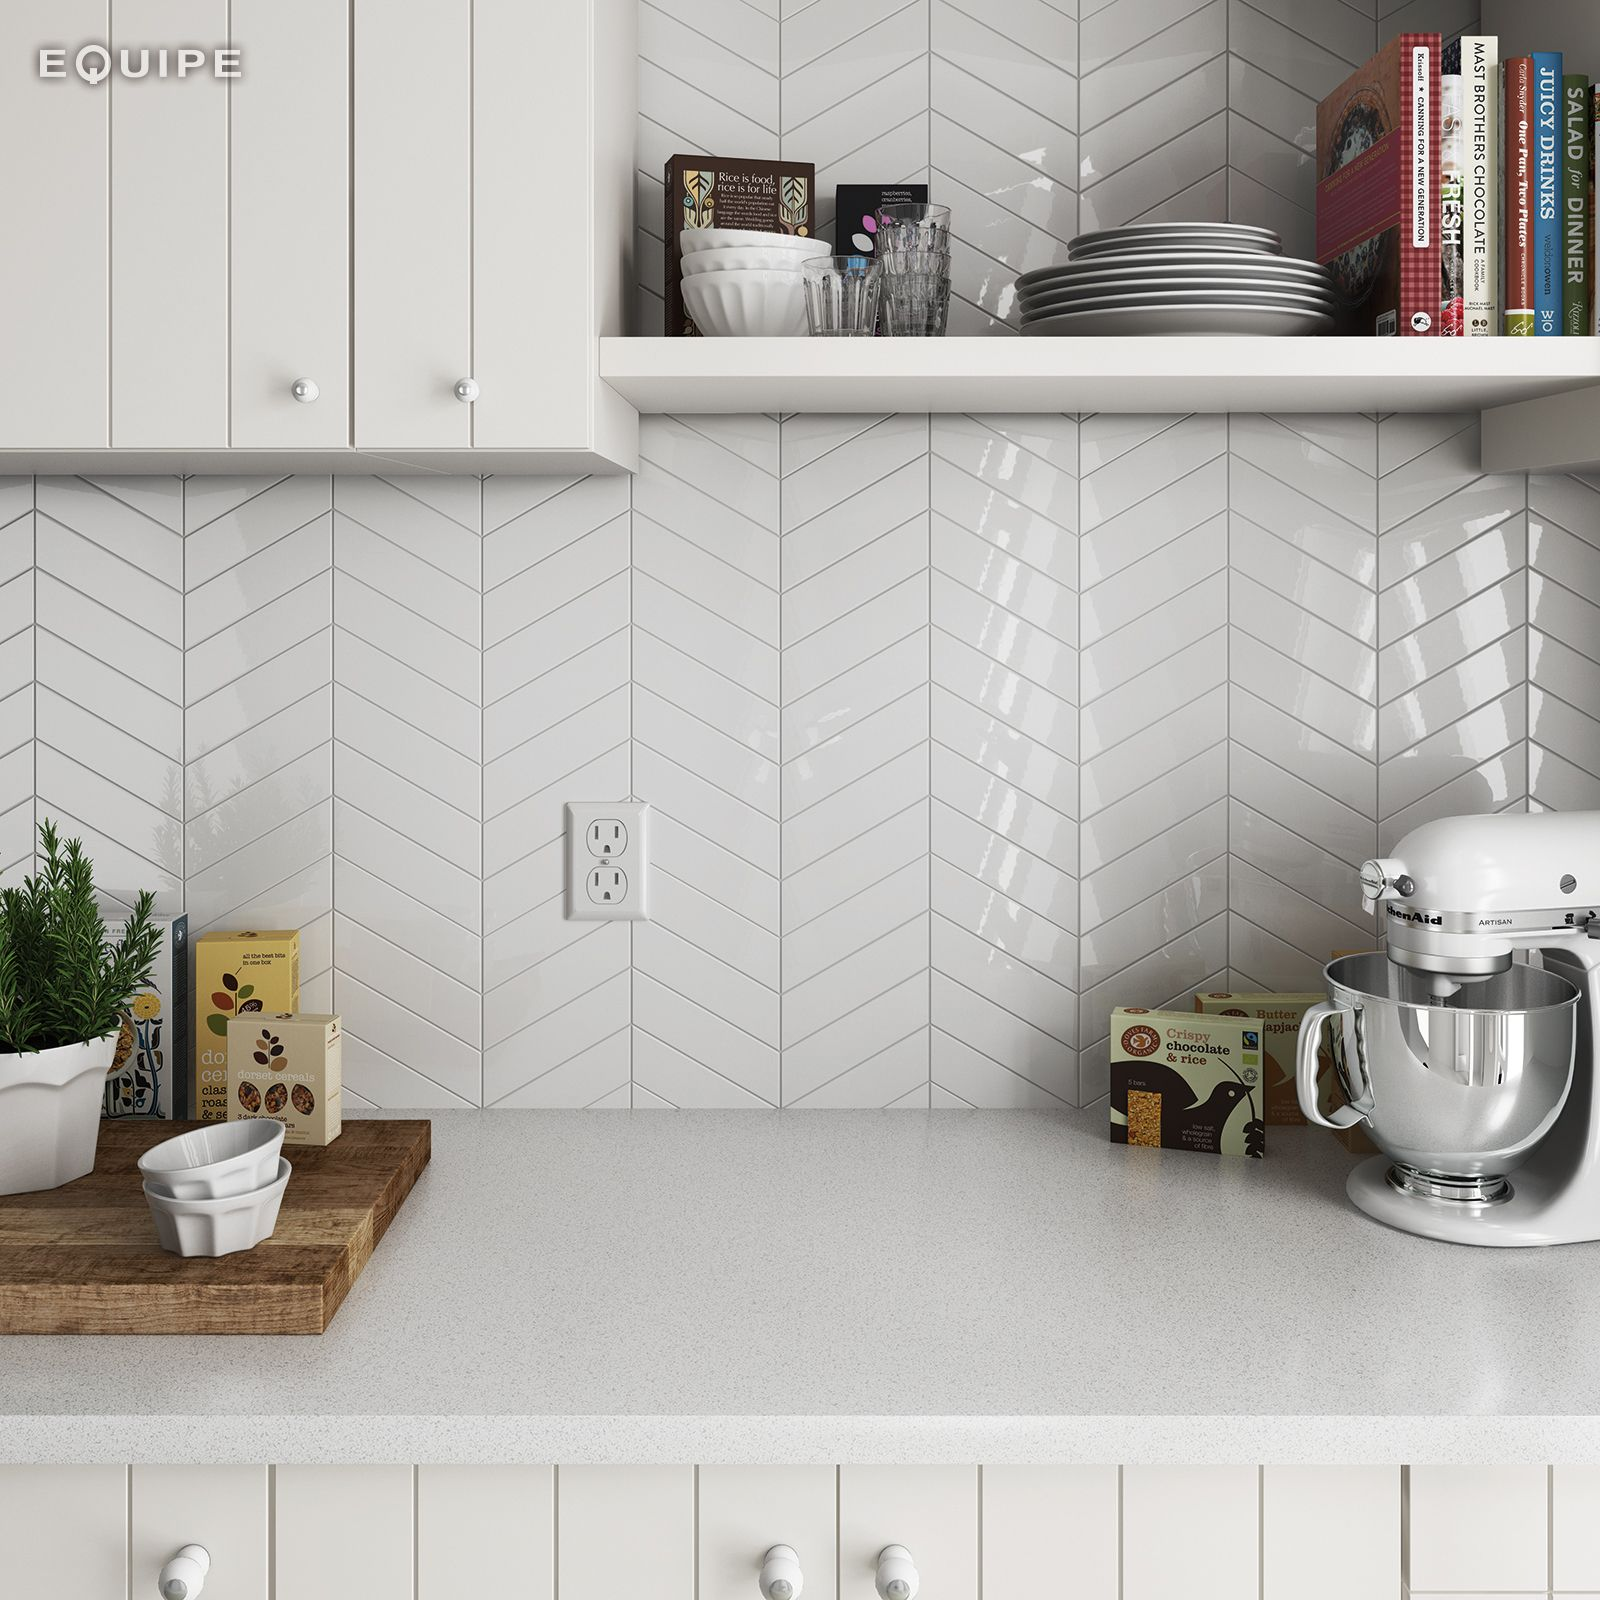 Tile On Kitchen Wall: These New Chevron Wall Tiles Would Make A Stunning